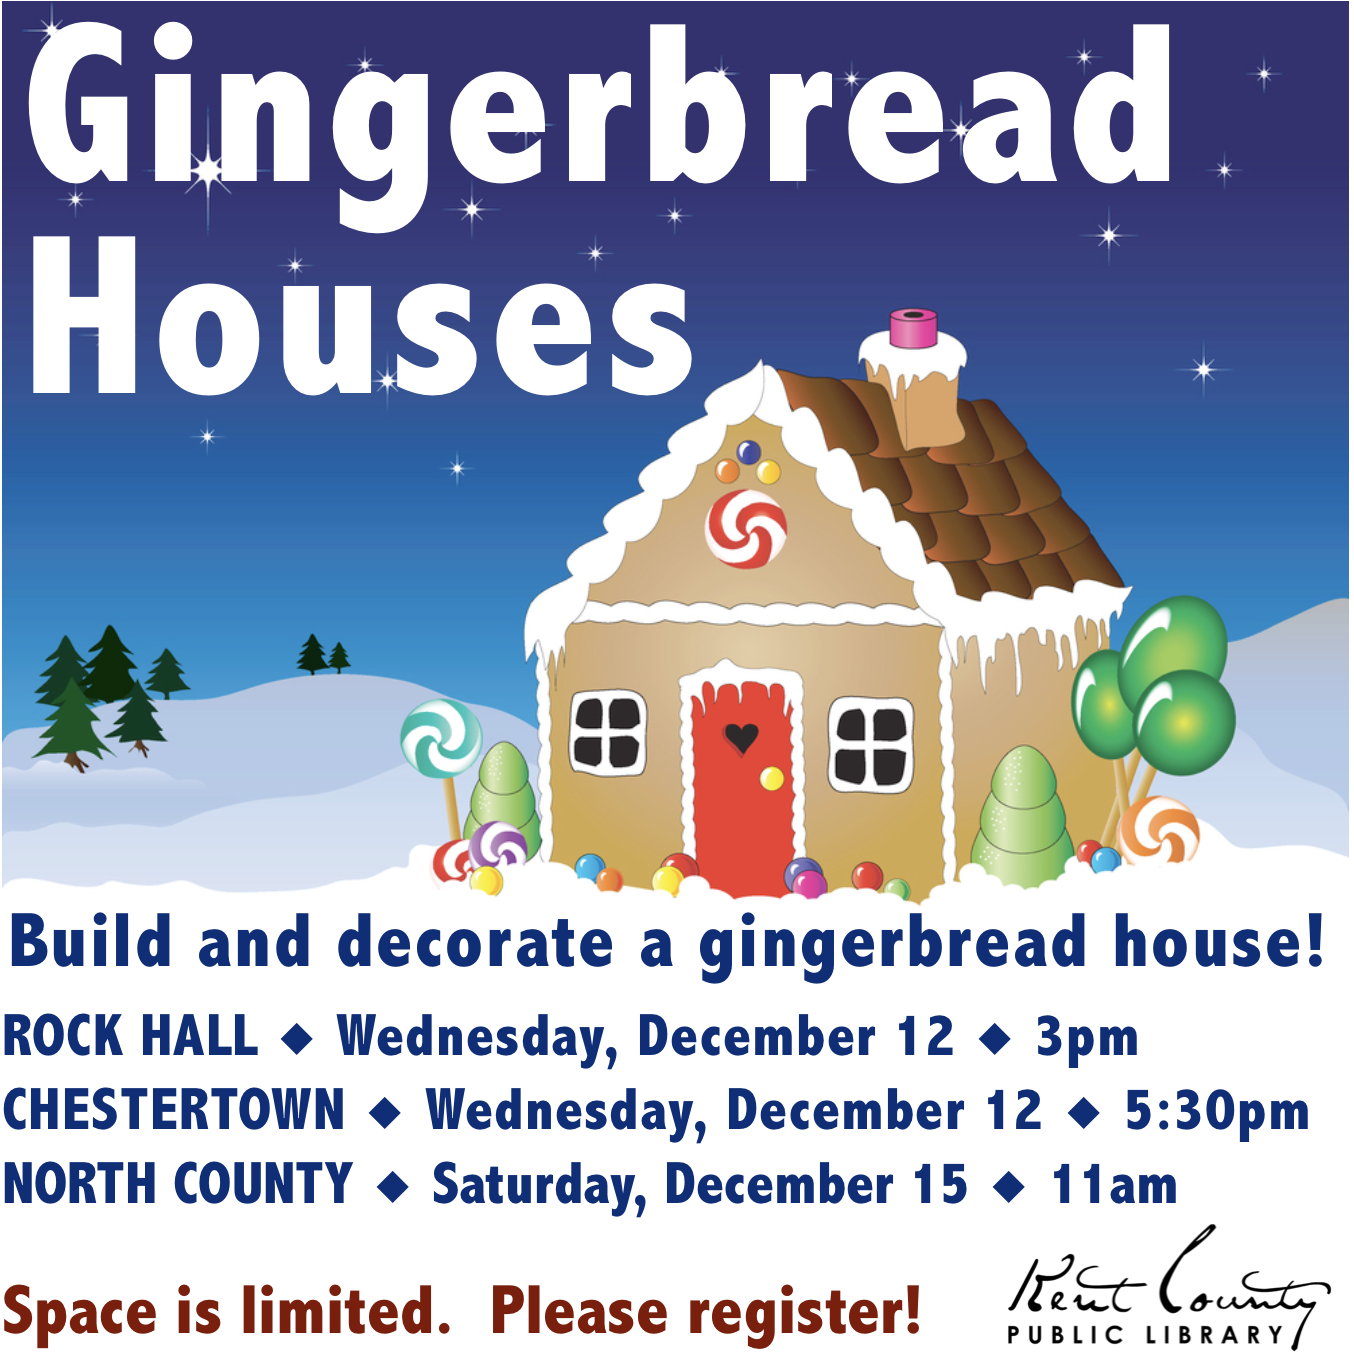 Gingerbread Houses in North County